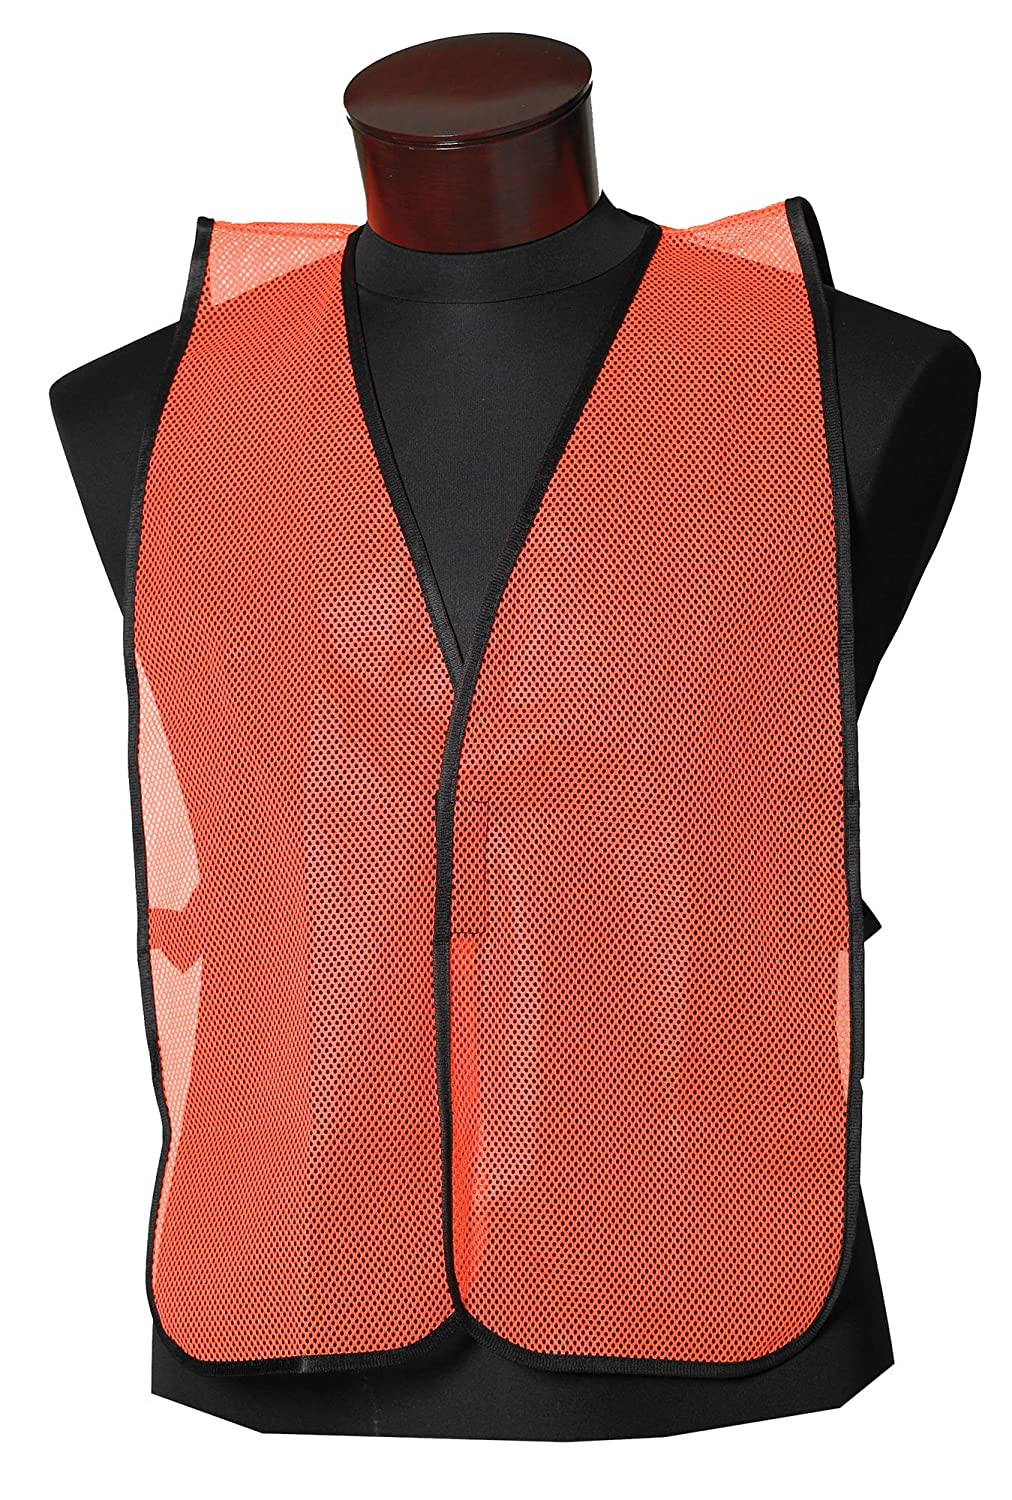 Jackson Safety Fabric Econo Style ESK Safety Vest with No Reflective